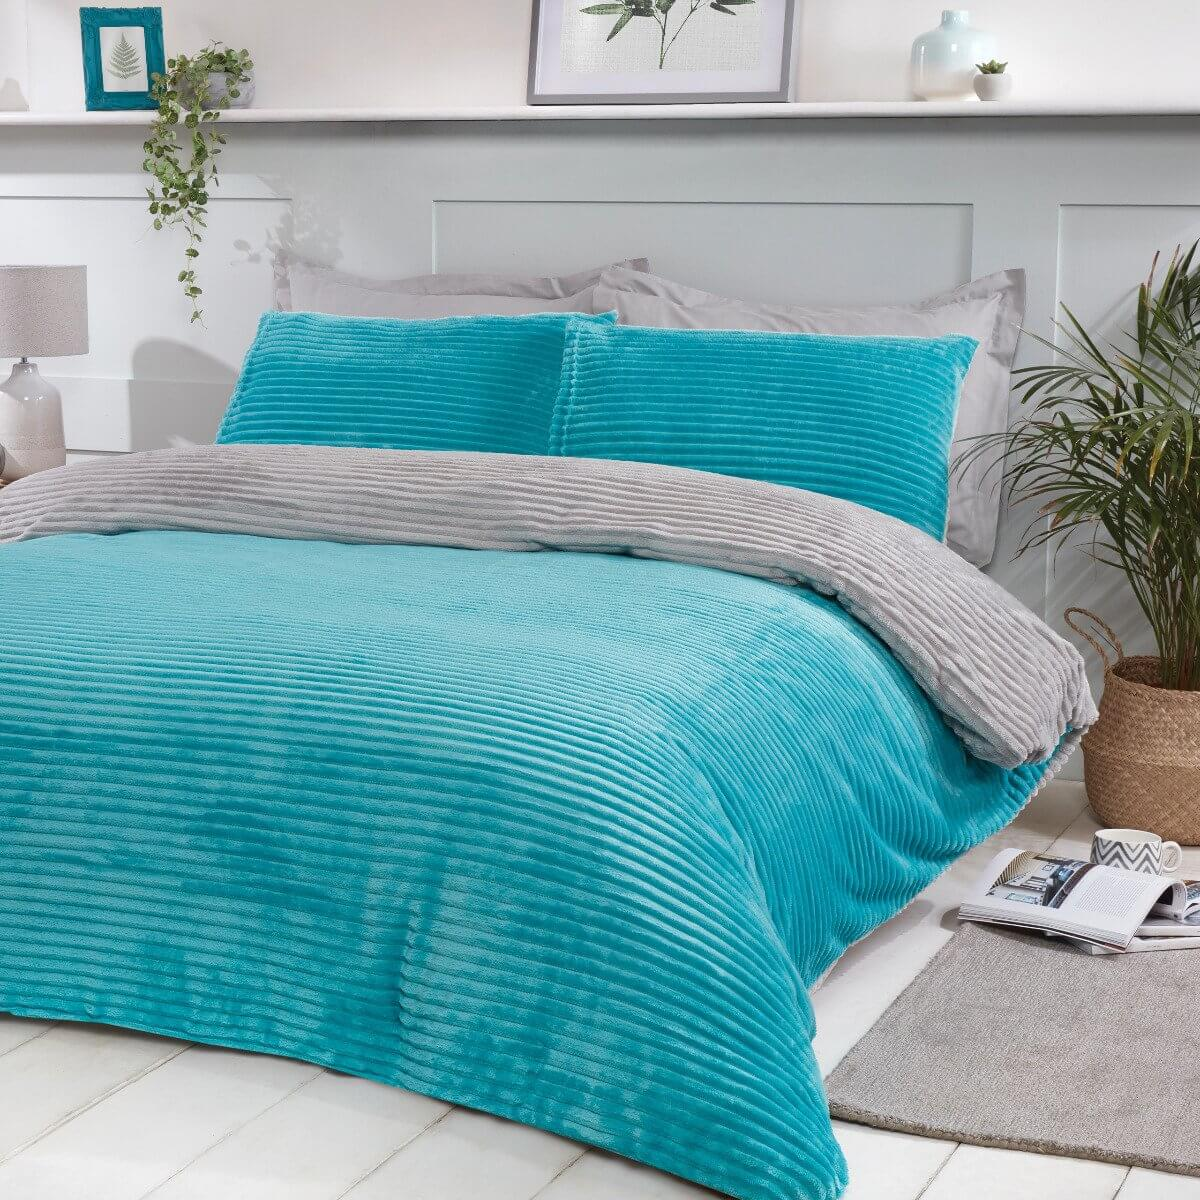 Ribbed Fleece Bedding - Reversible Duvet Cover and Pillowcase Set